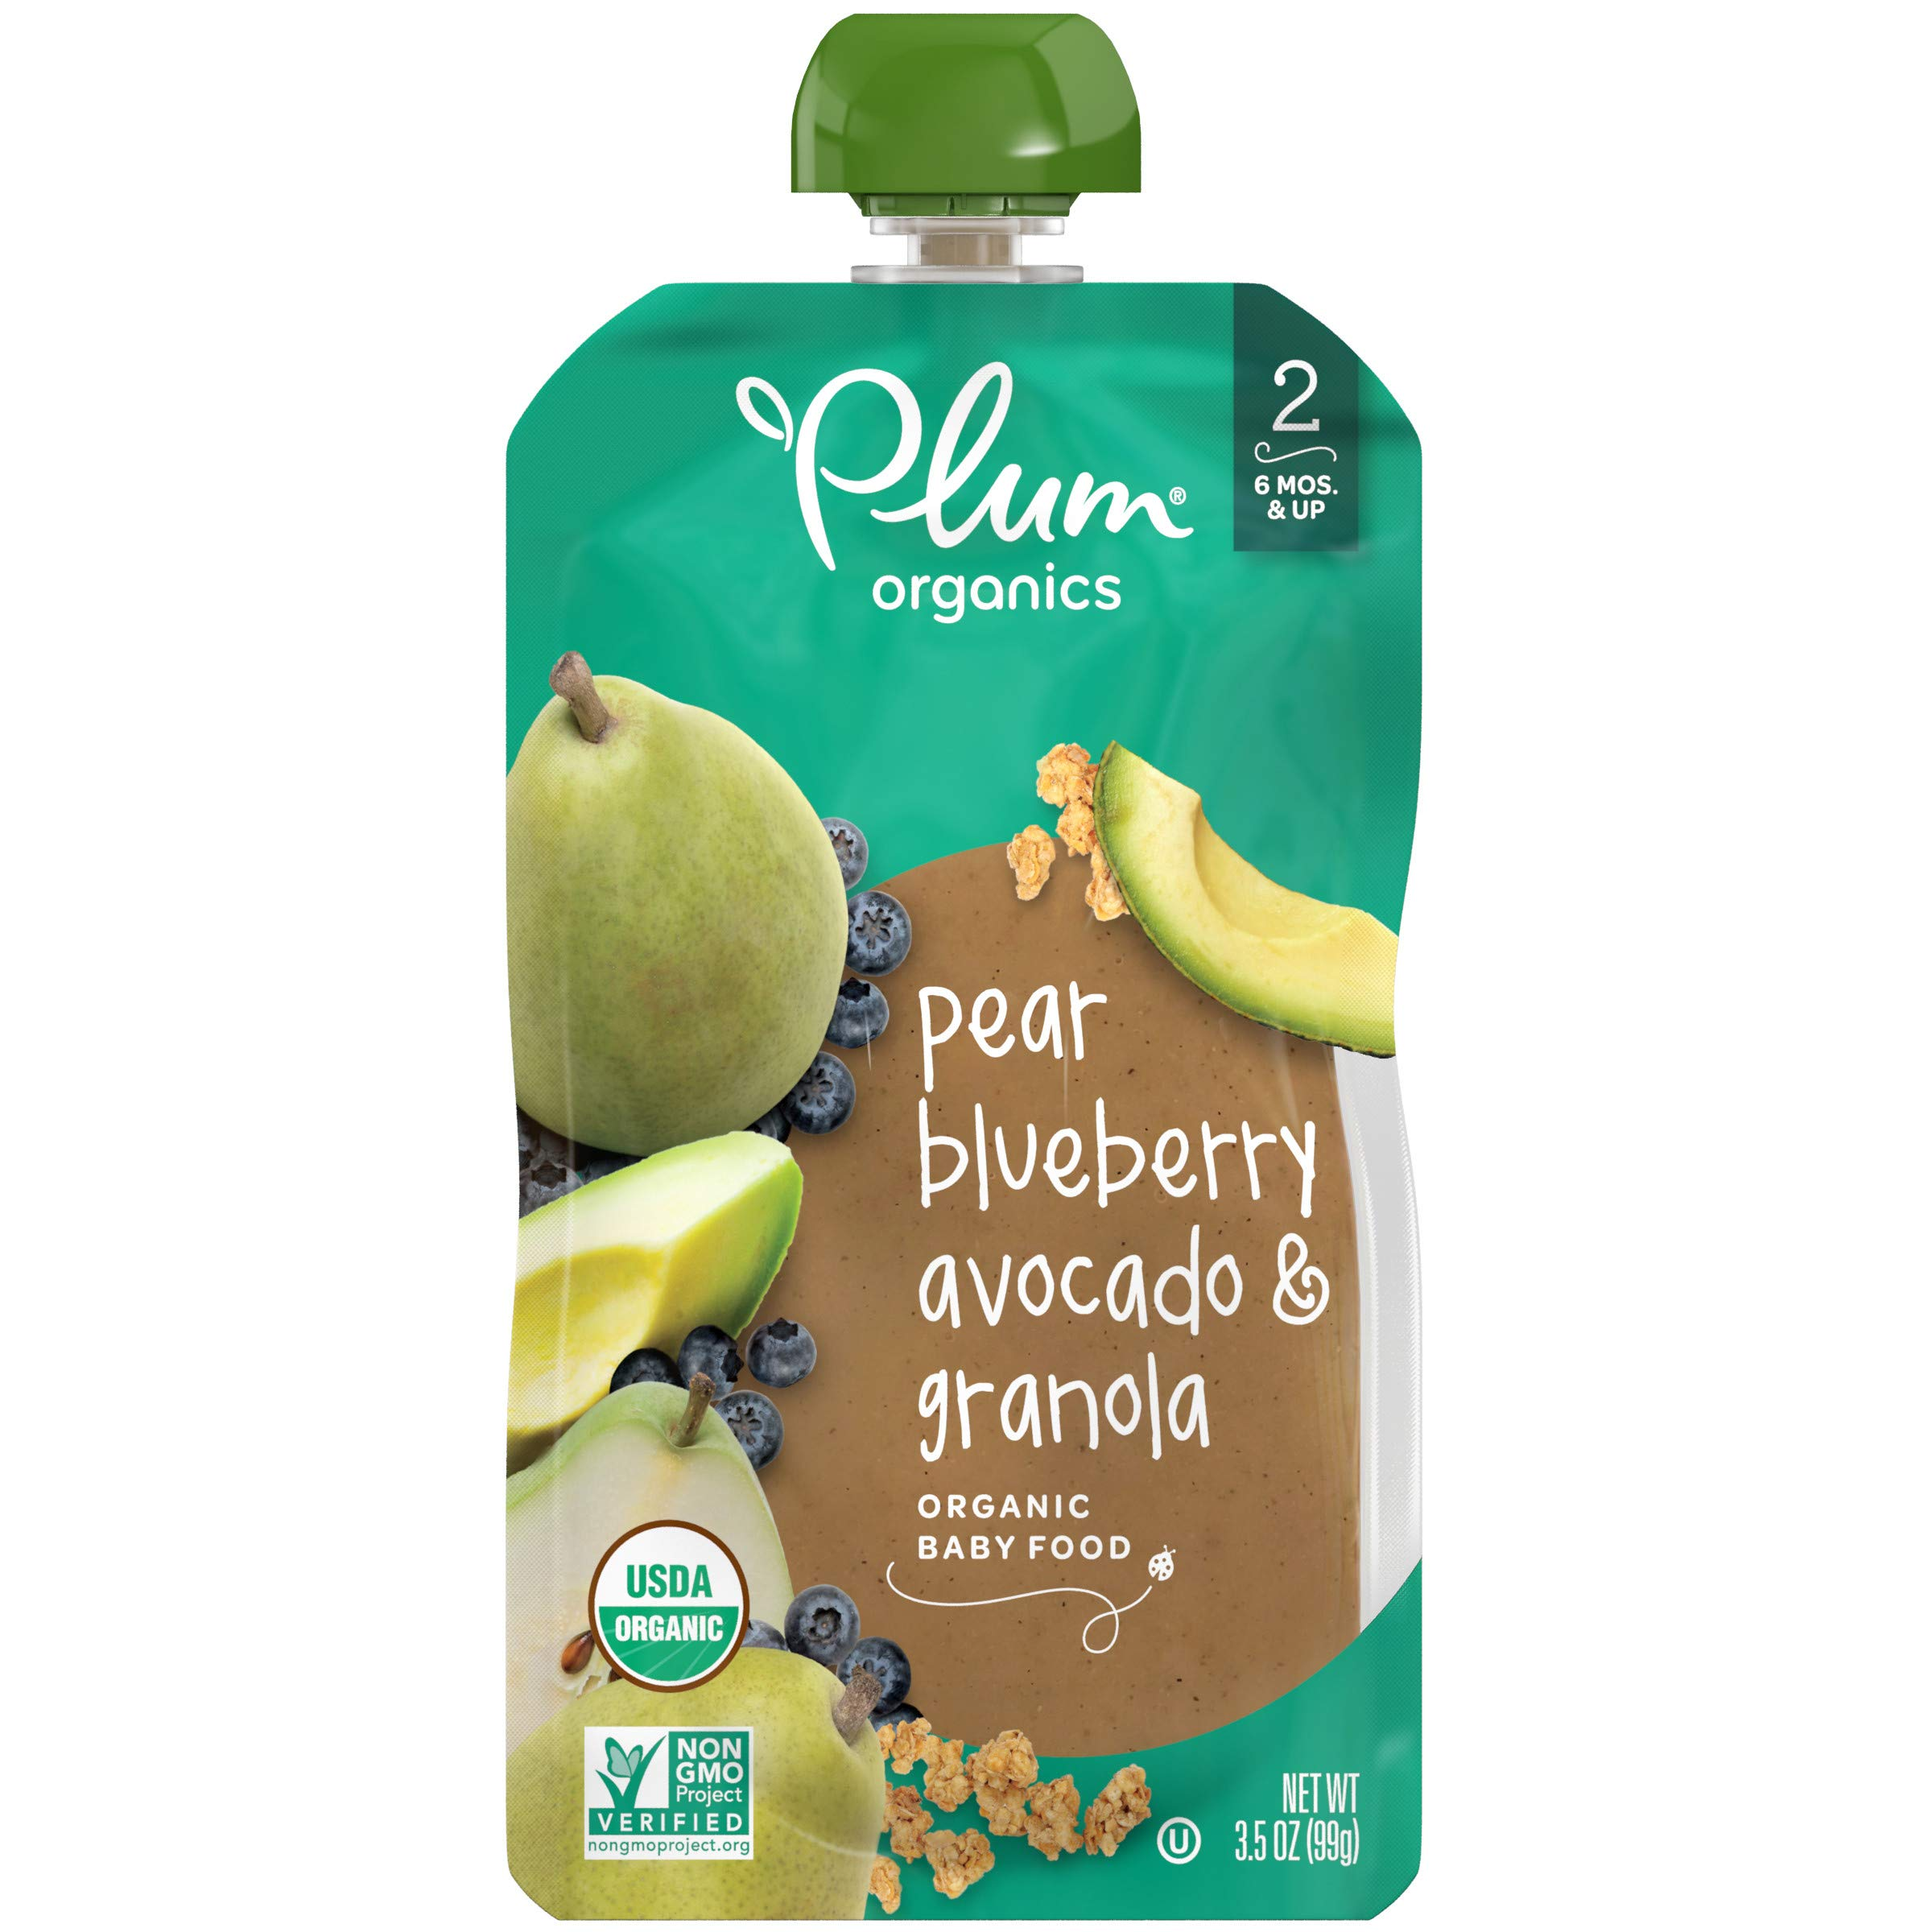 Plum Organics Stage 2 Organic Baby Food, Pear, Blueberry, Avocado & Granola, 3.5 Ounce Pouch, Pack of 6